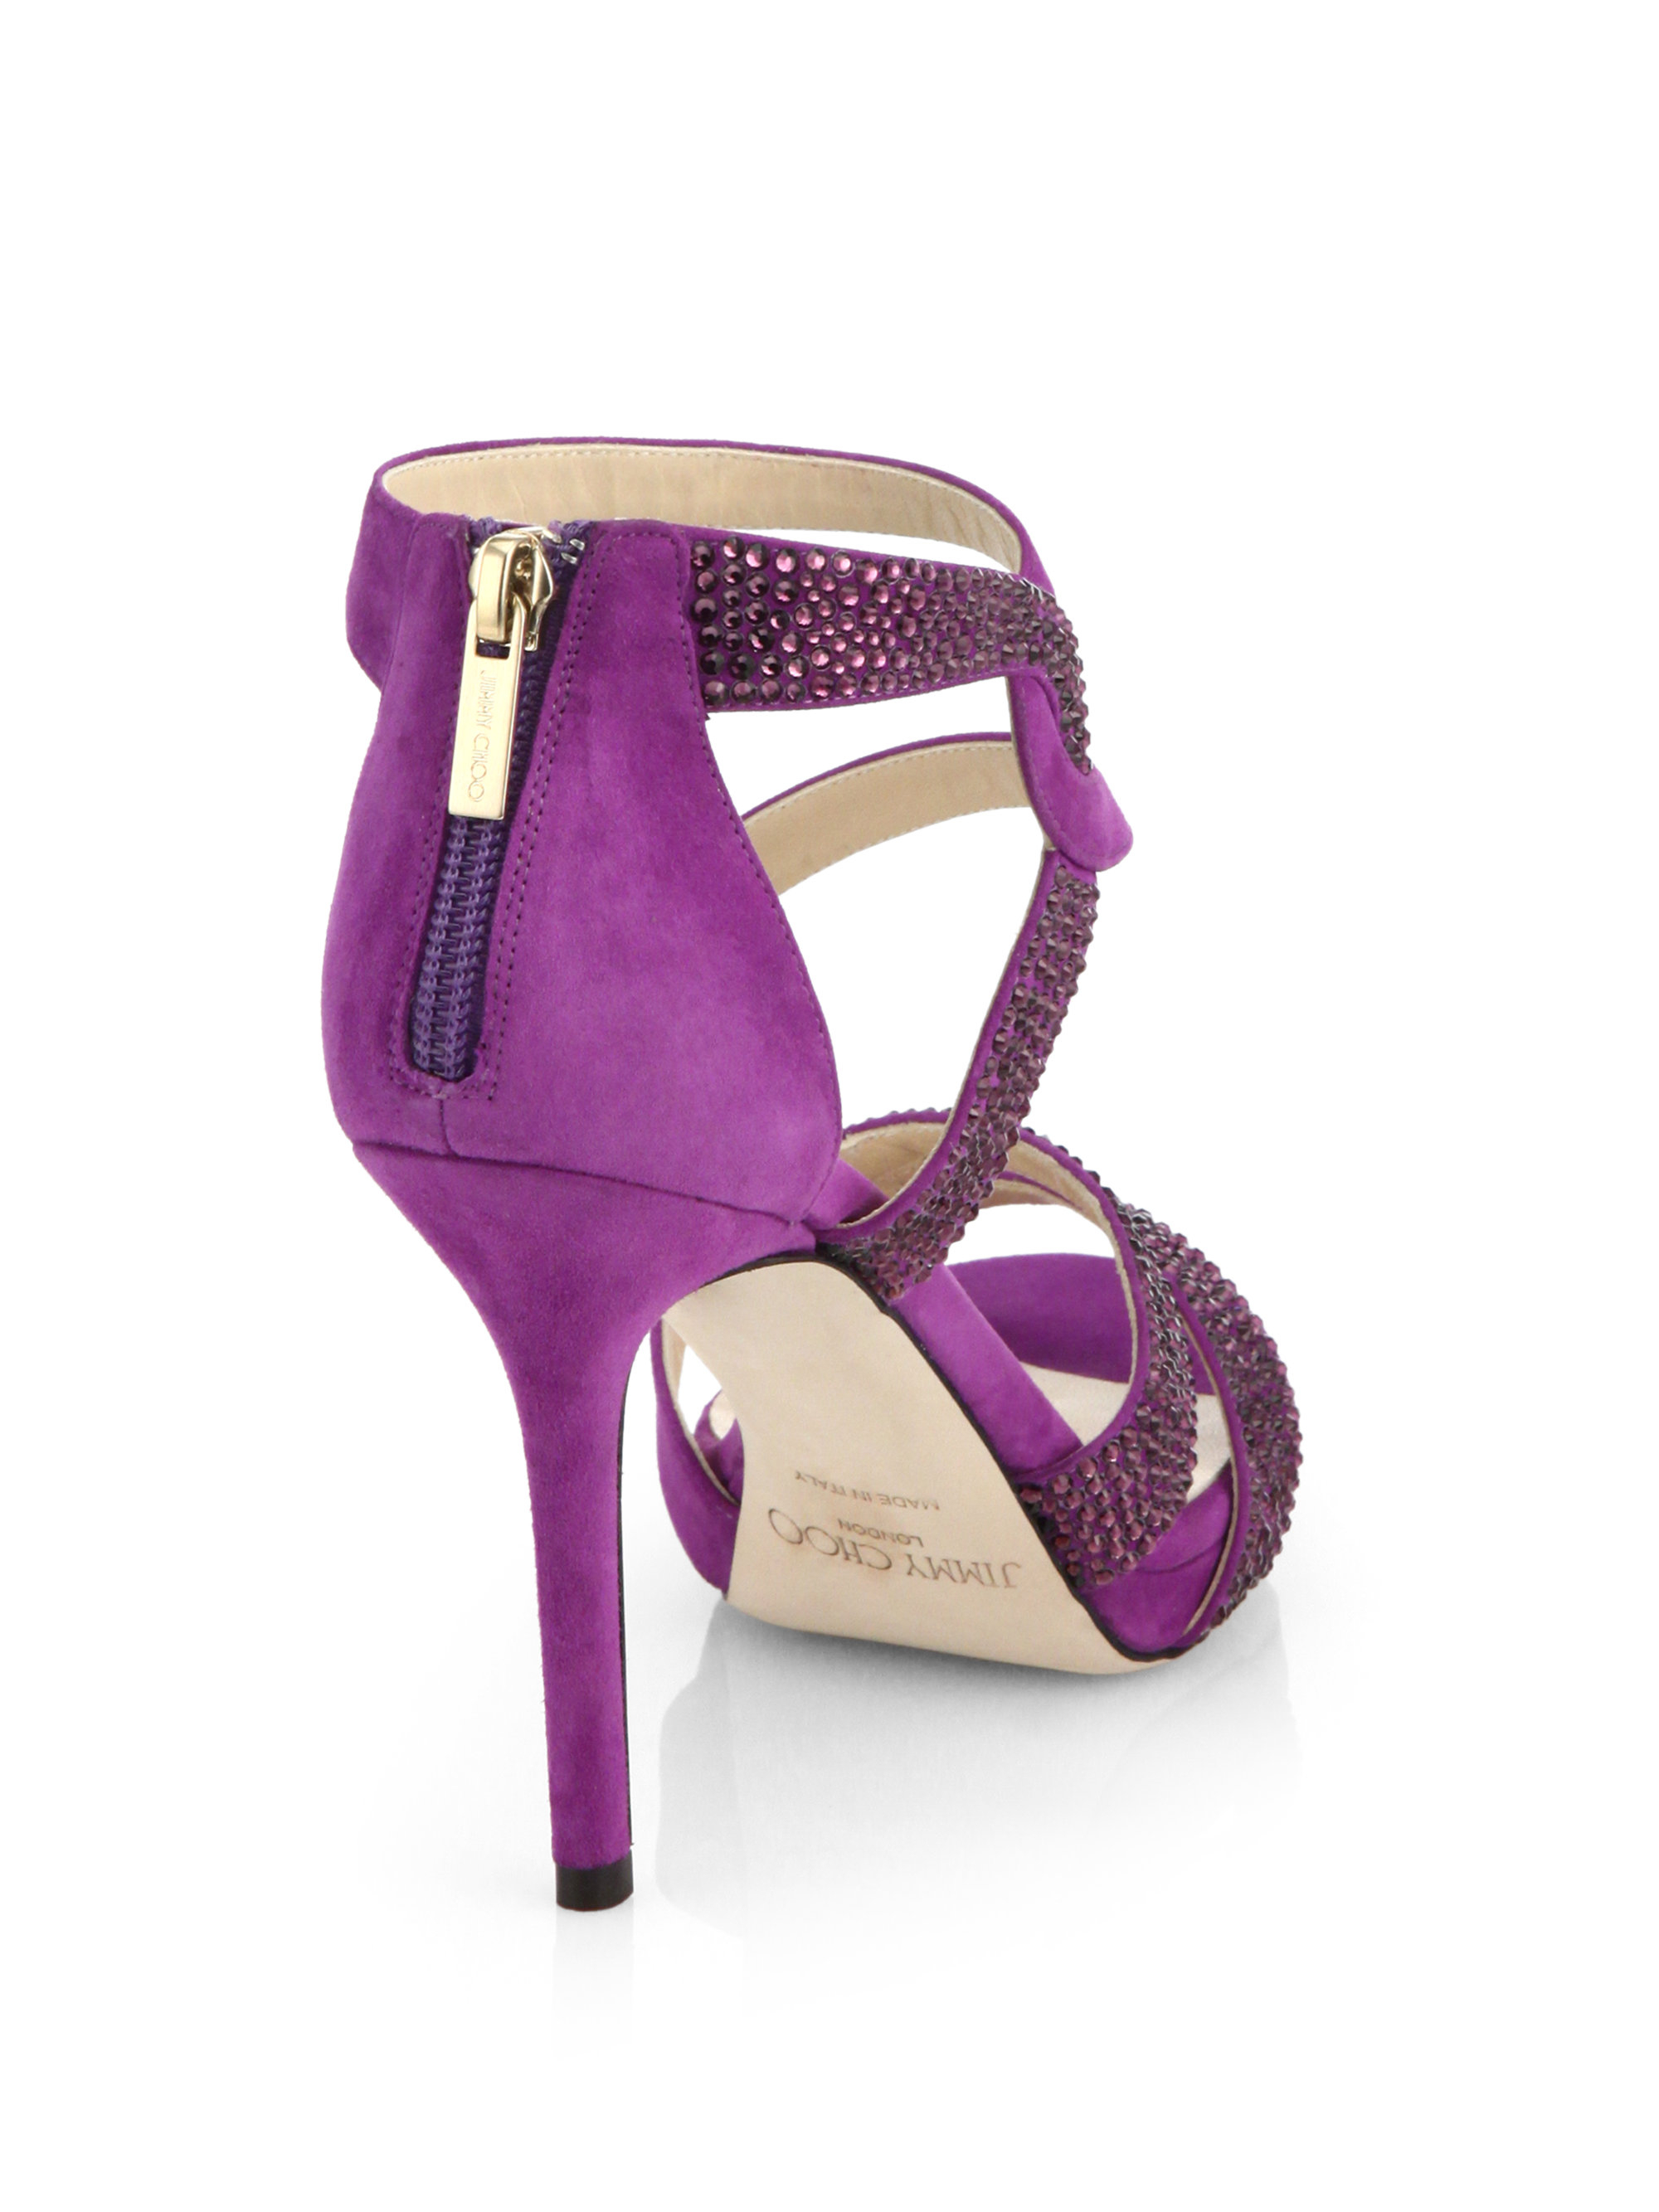 0e9599c719f88e Lyst - Jimmy Choo Tomar Crystal-coated Suede Sandals in Purple